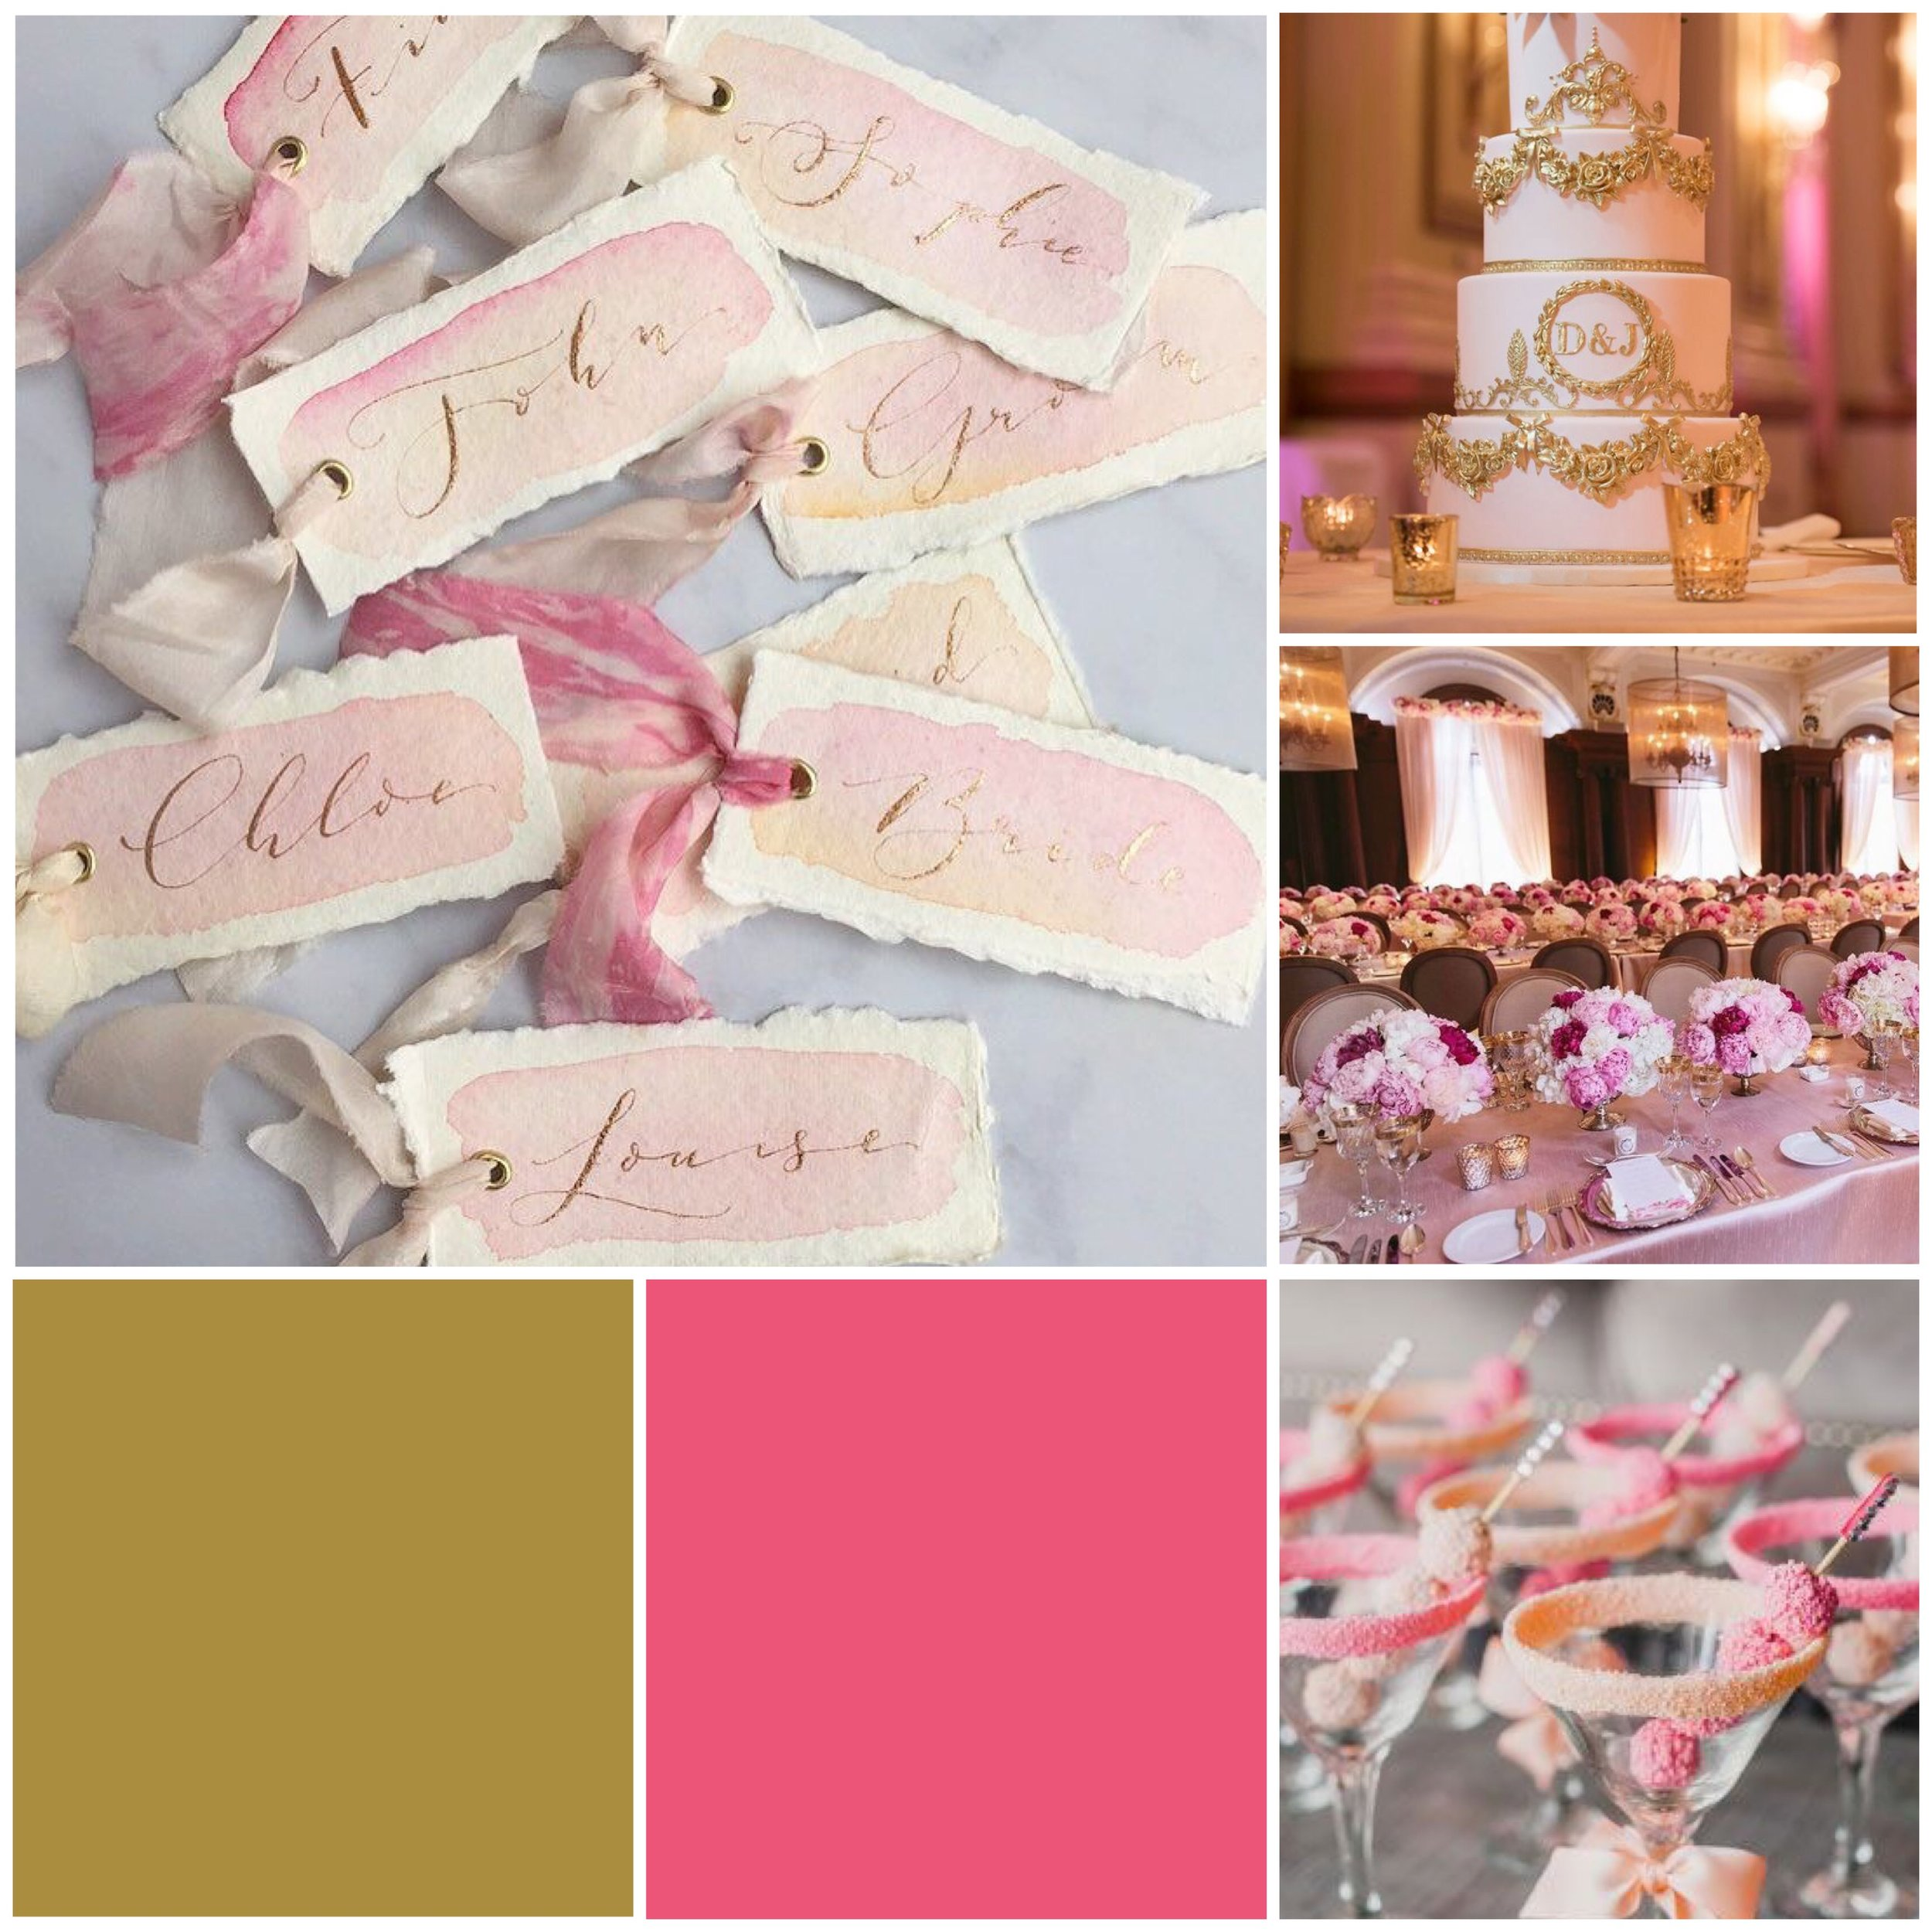 Punch & Gold Moodboard for your wedding inspiration.